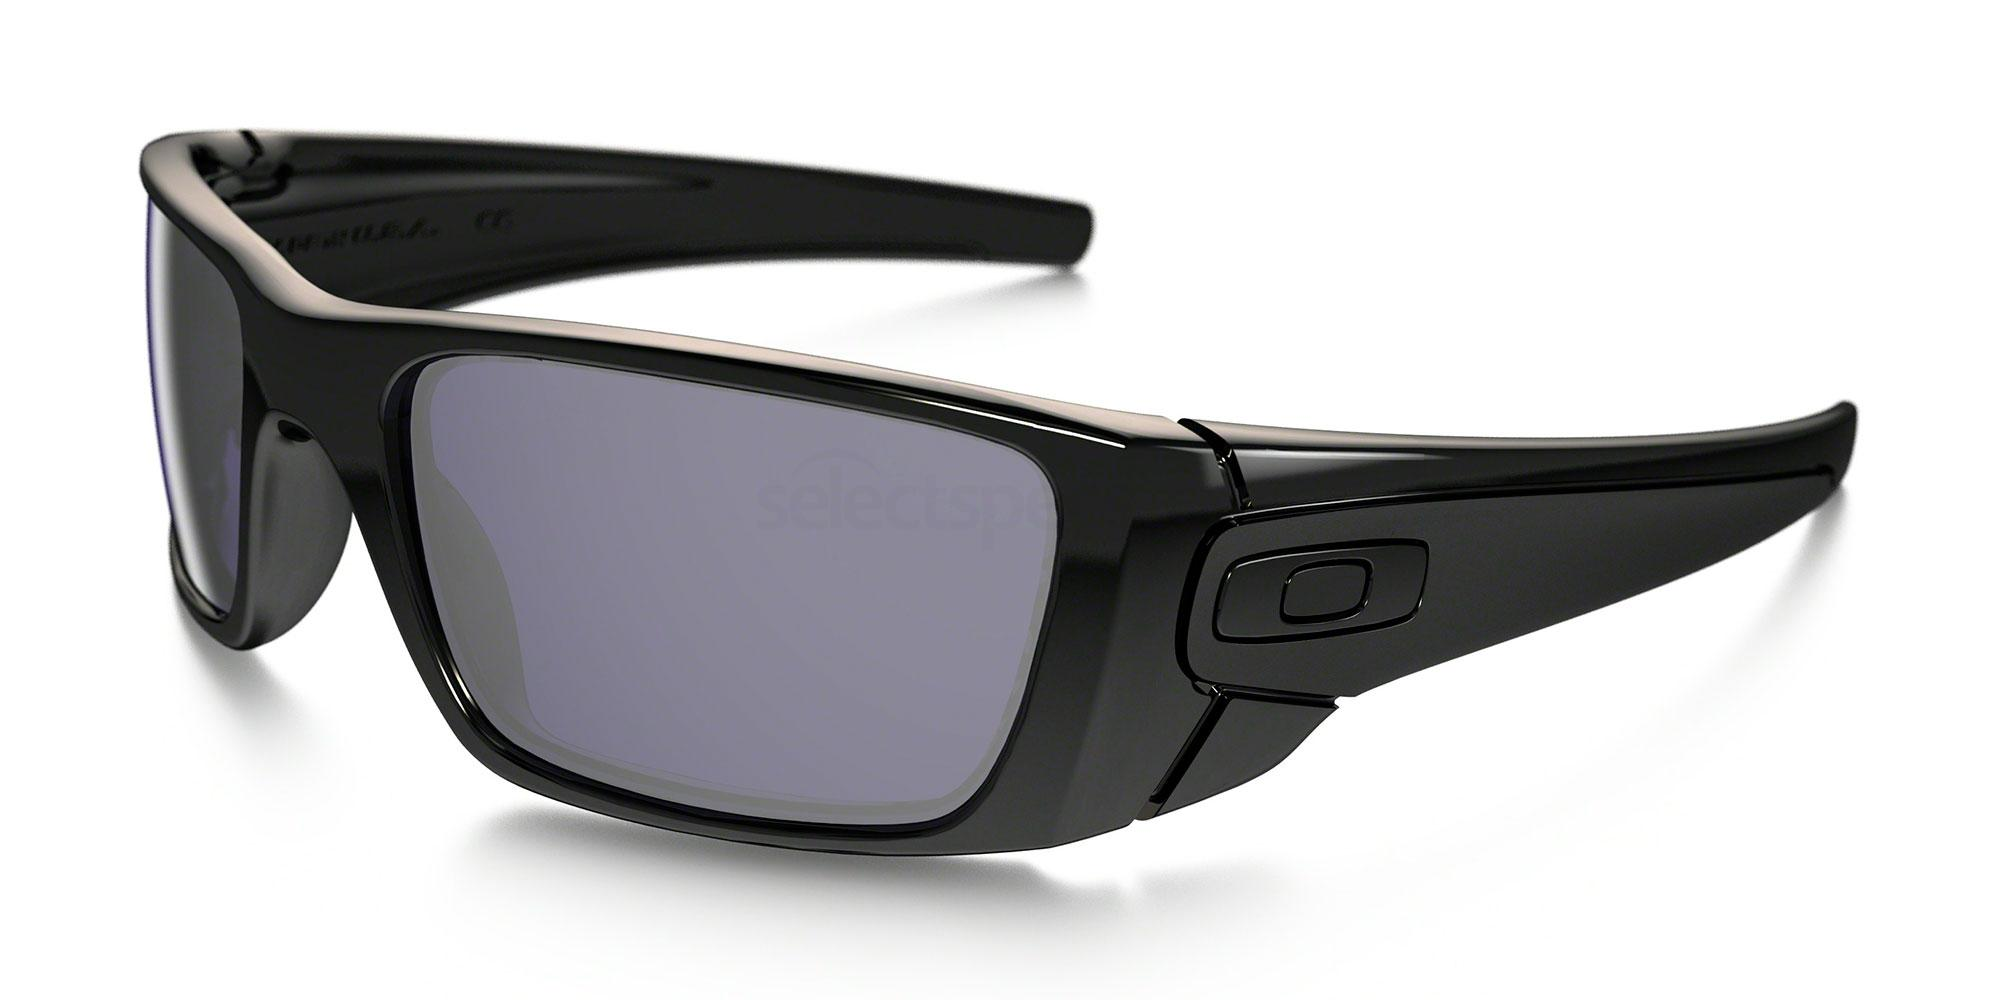 909601 OO9096 FUEL CELL (Standard) (1/3) Sunglasses, Oakley